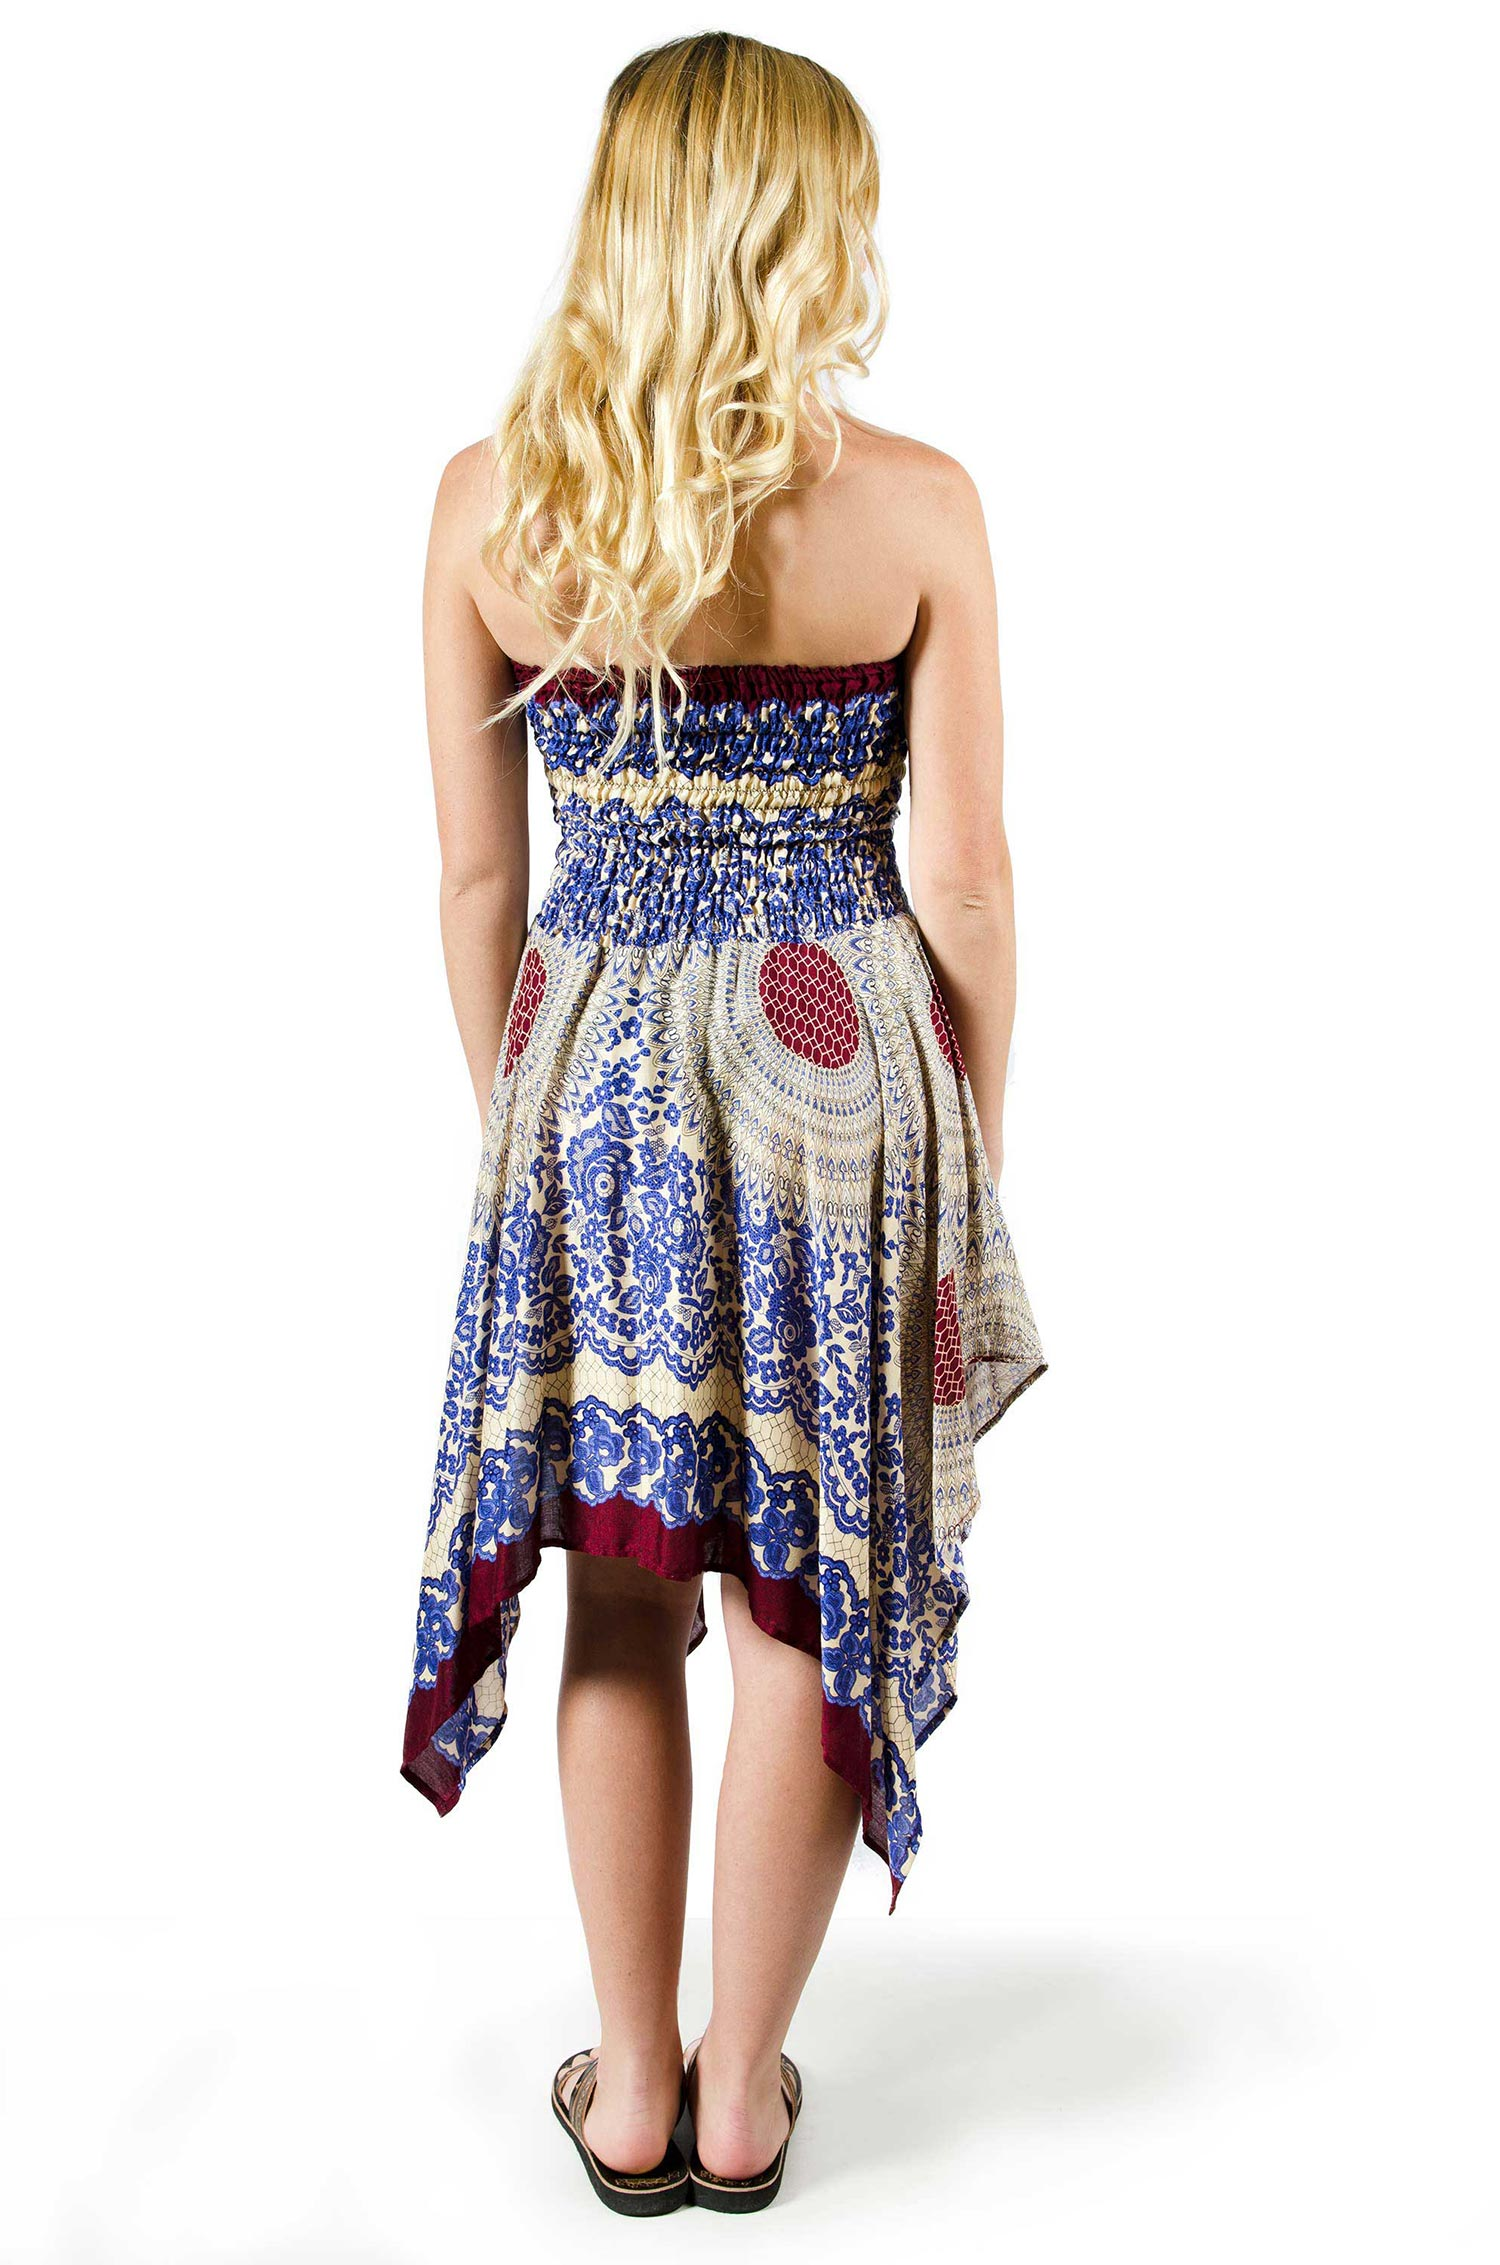 Convertible Print Fairy Dress / Skirt - Blue - 3135B